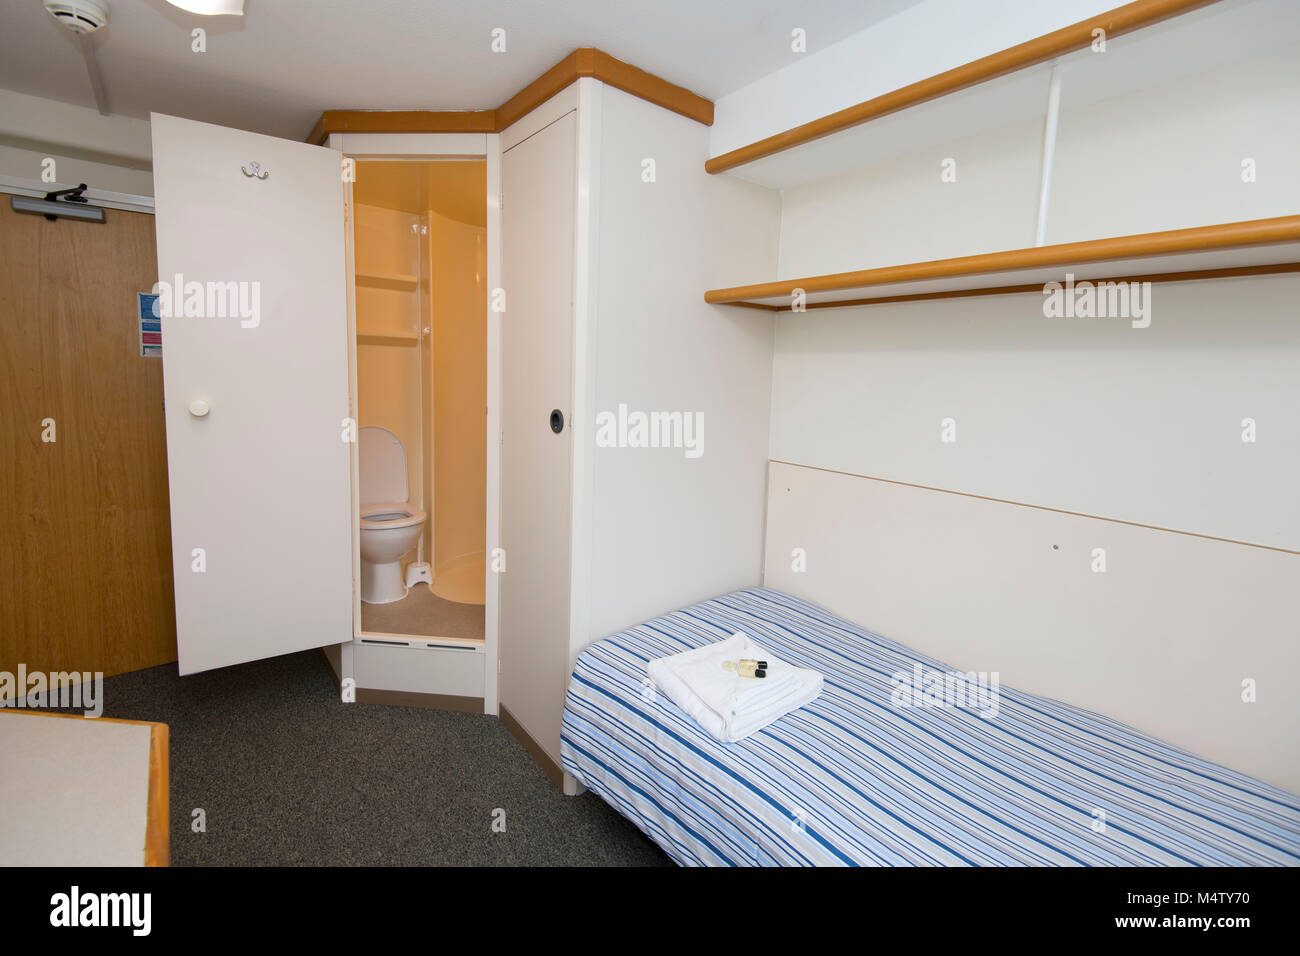 Small bedroom and study student accommodation area in university halls. - Stock Image